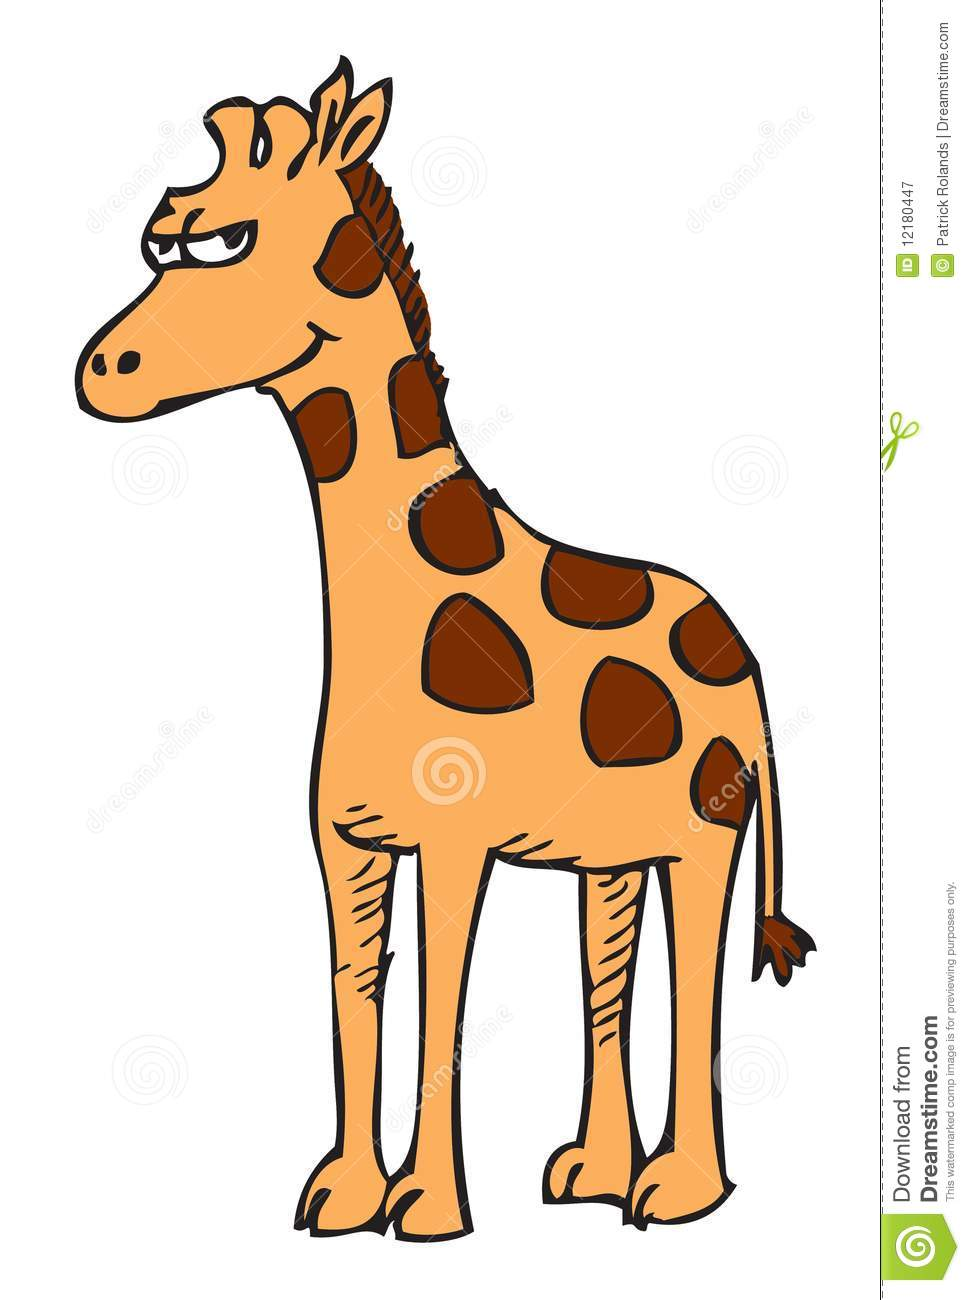 images of Cartoon Giraffe Royalty Free Stock Photography Image